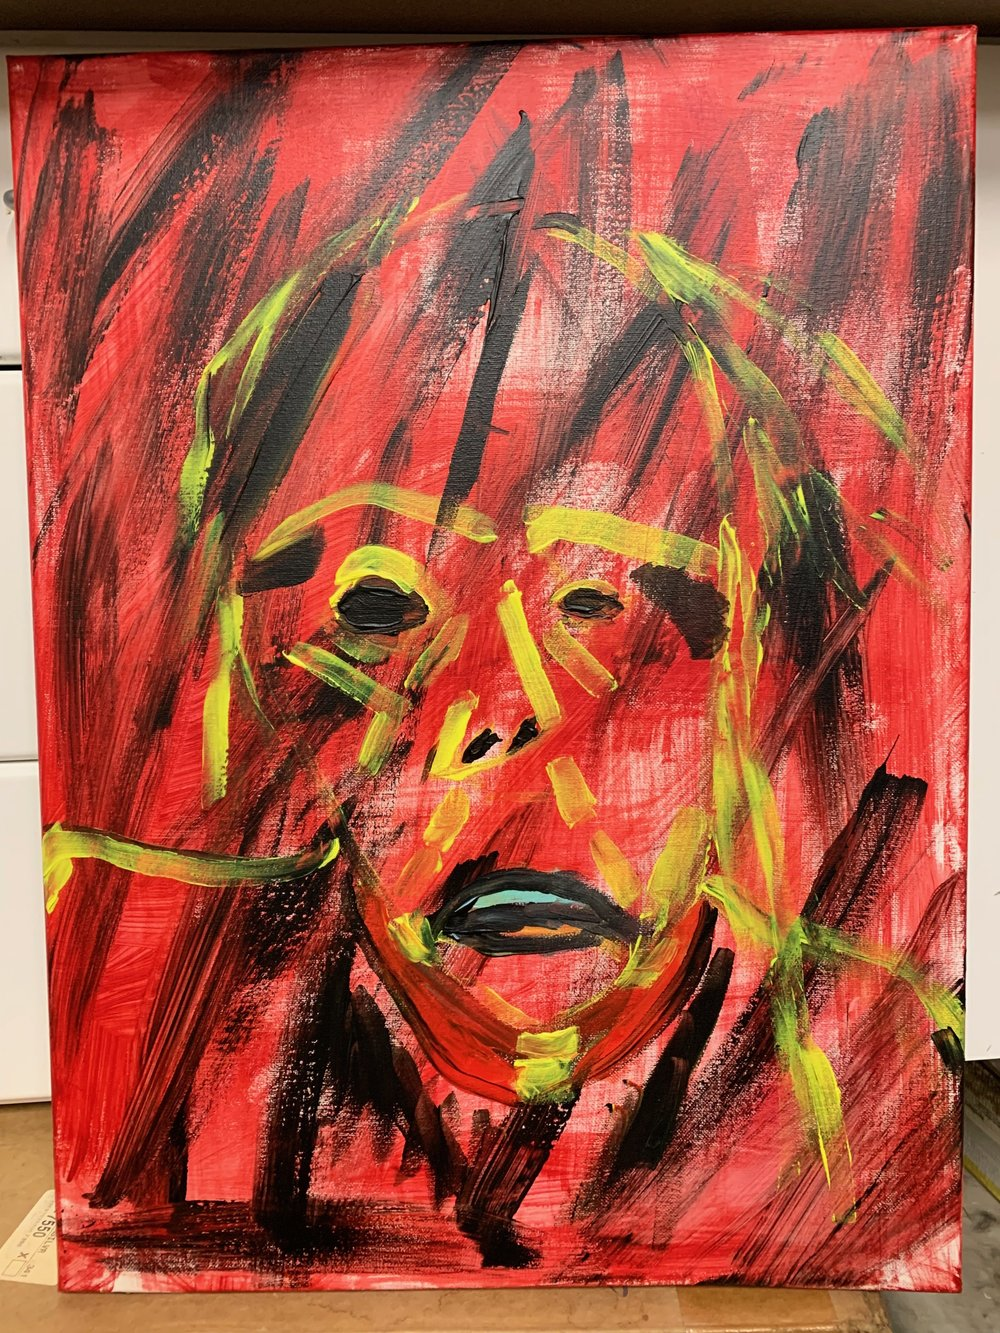 Red Self-Portrait. Acrylic on Canvas. 18x24. 2018